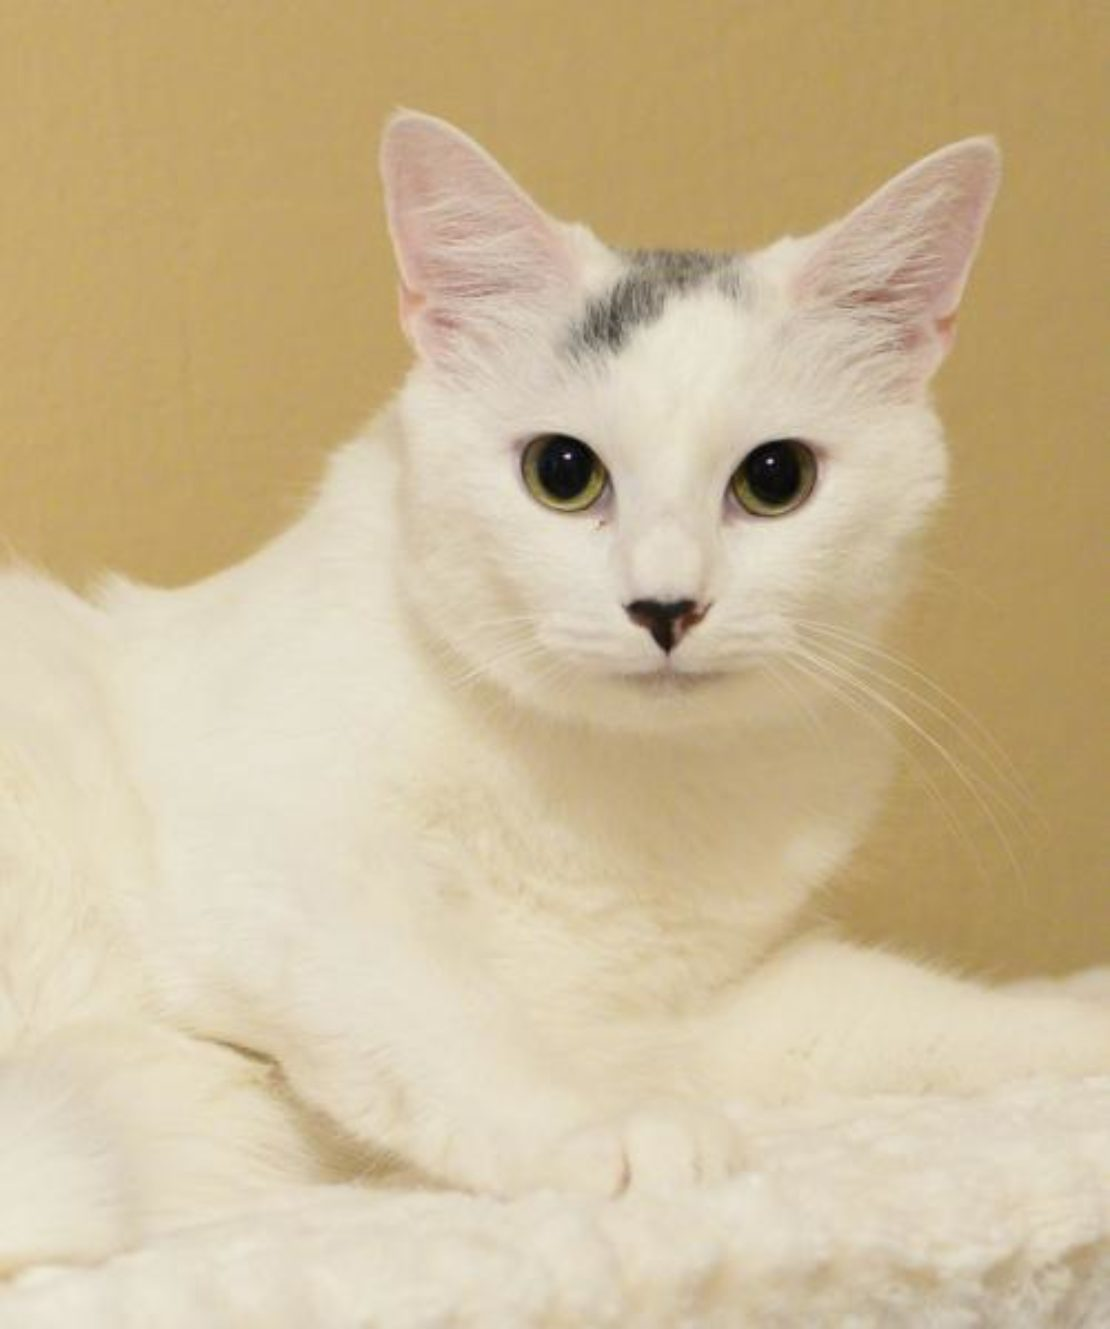 white cat with black streak on forehead